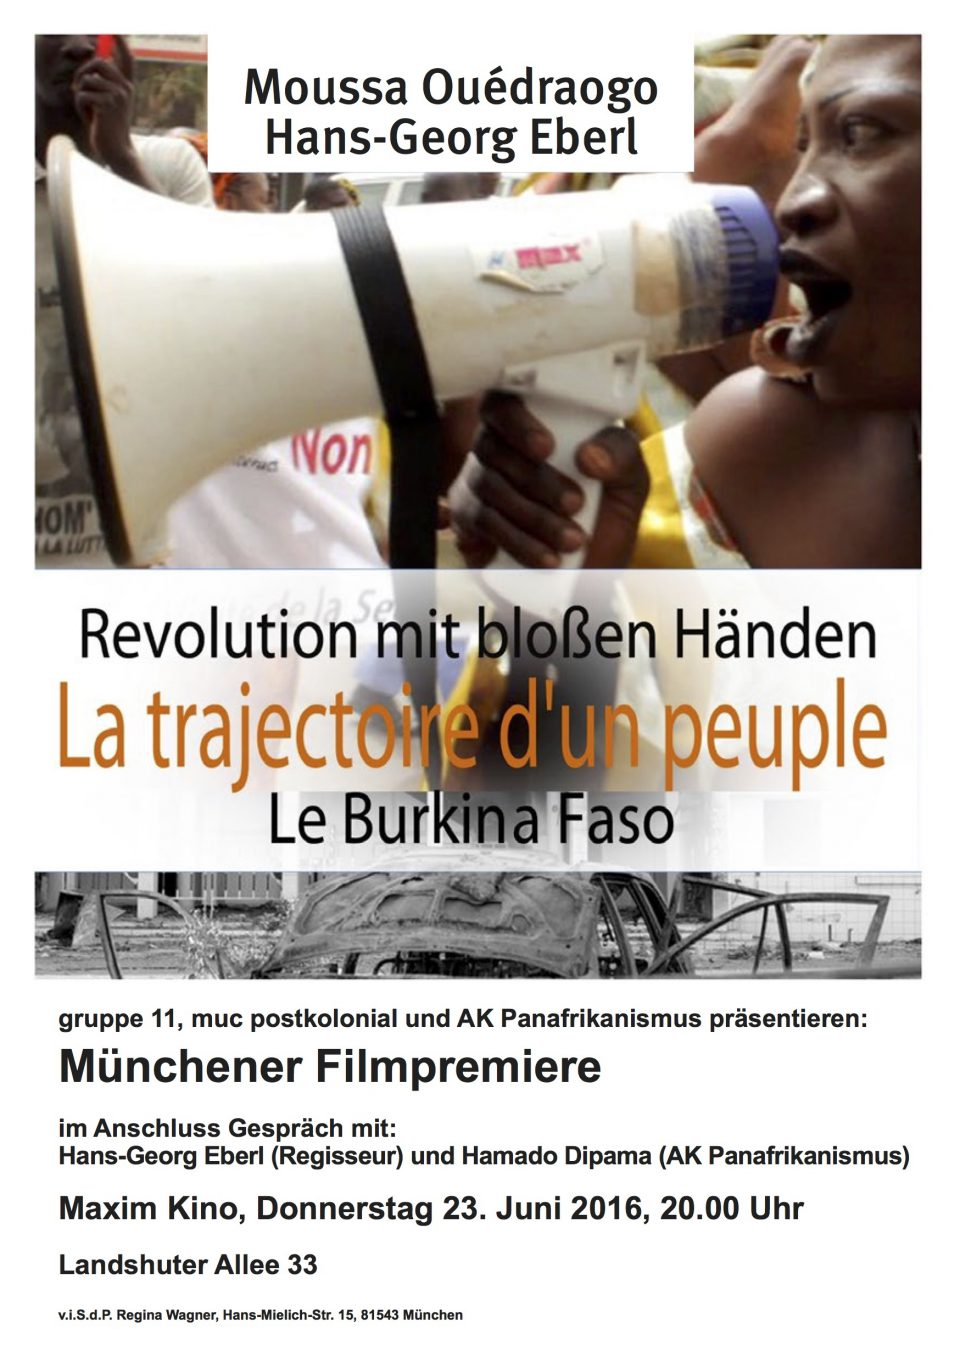 16_06_23 Revolution in Burkina Faso Filmpremiere A5_flyer_online